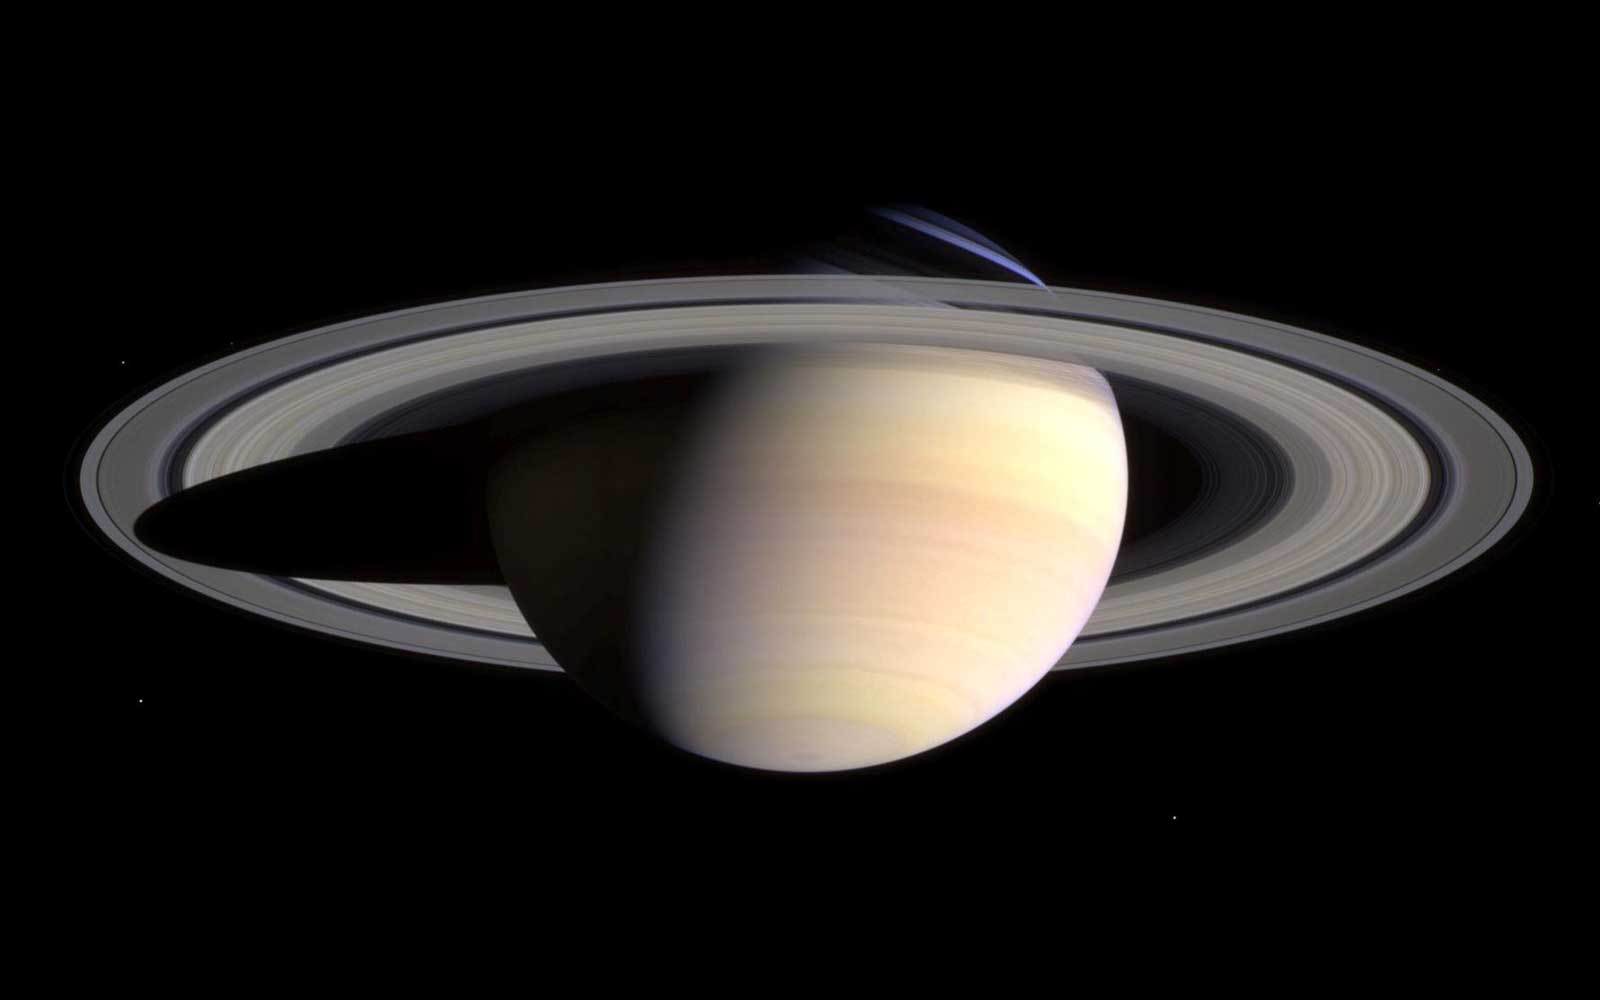 Saturn's Rings Are at Their Best and Brightest This Month — Here's How to See Them